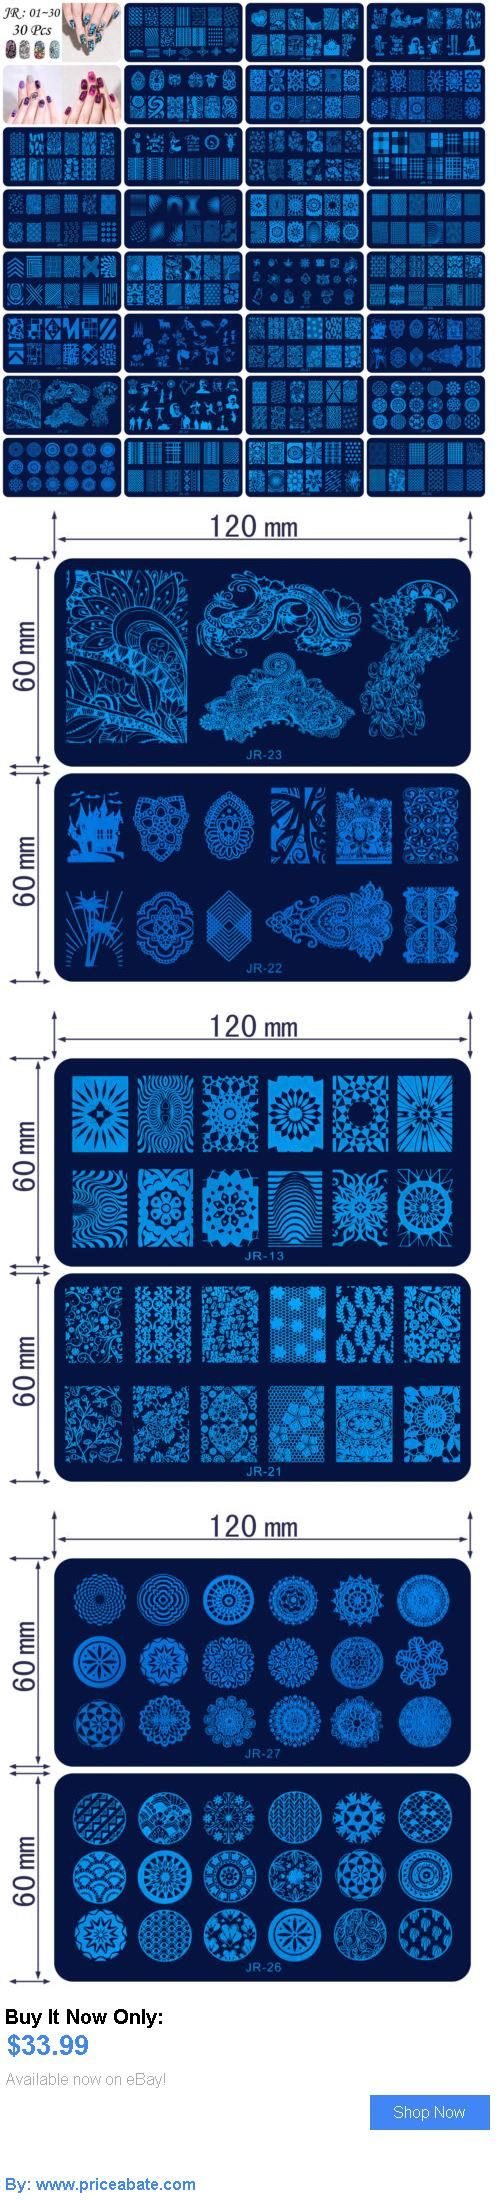 Nails: 30Pcs Manicure Jr Nail Stamping Plates Stainless Steel Nail Art Stamp Templates BUY IT NOW ONLY: $33.99 #priceabateNails OR #priceabate